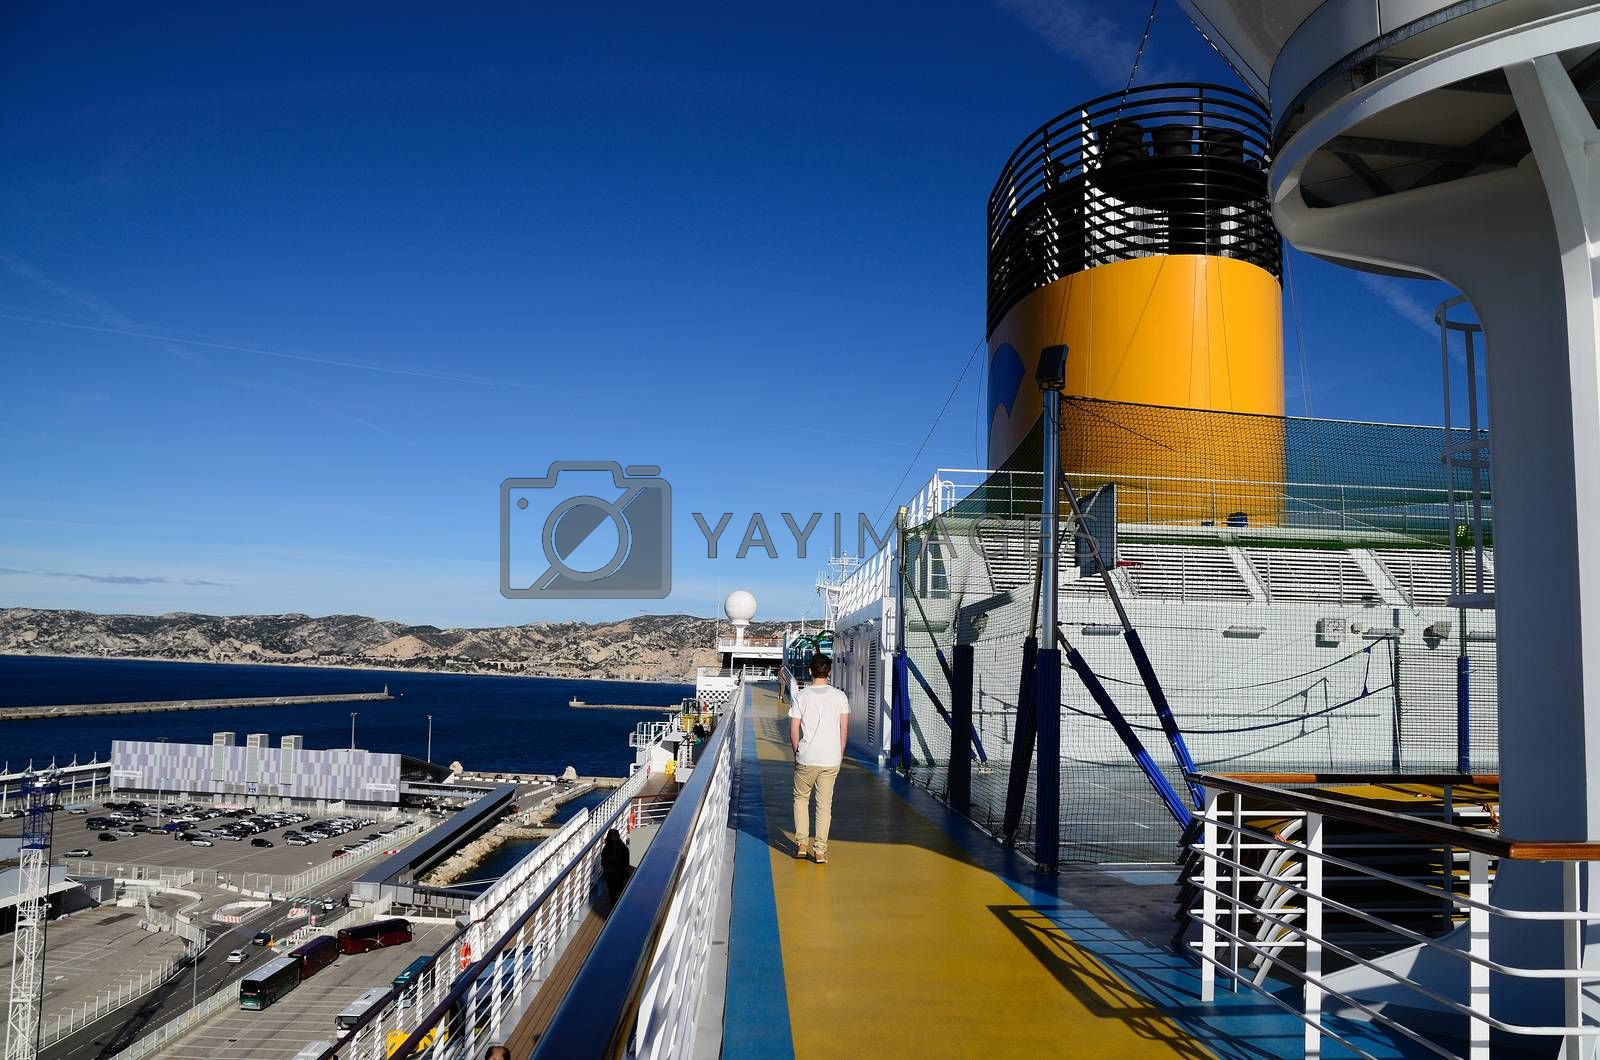 walk on a huge cruise ship in the port of Marseille